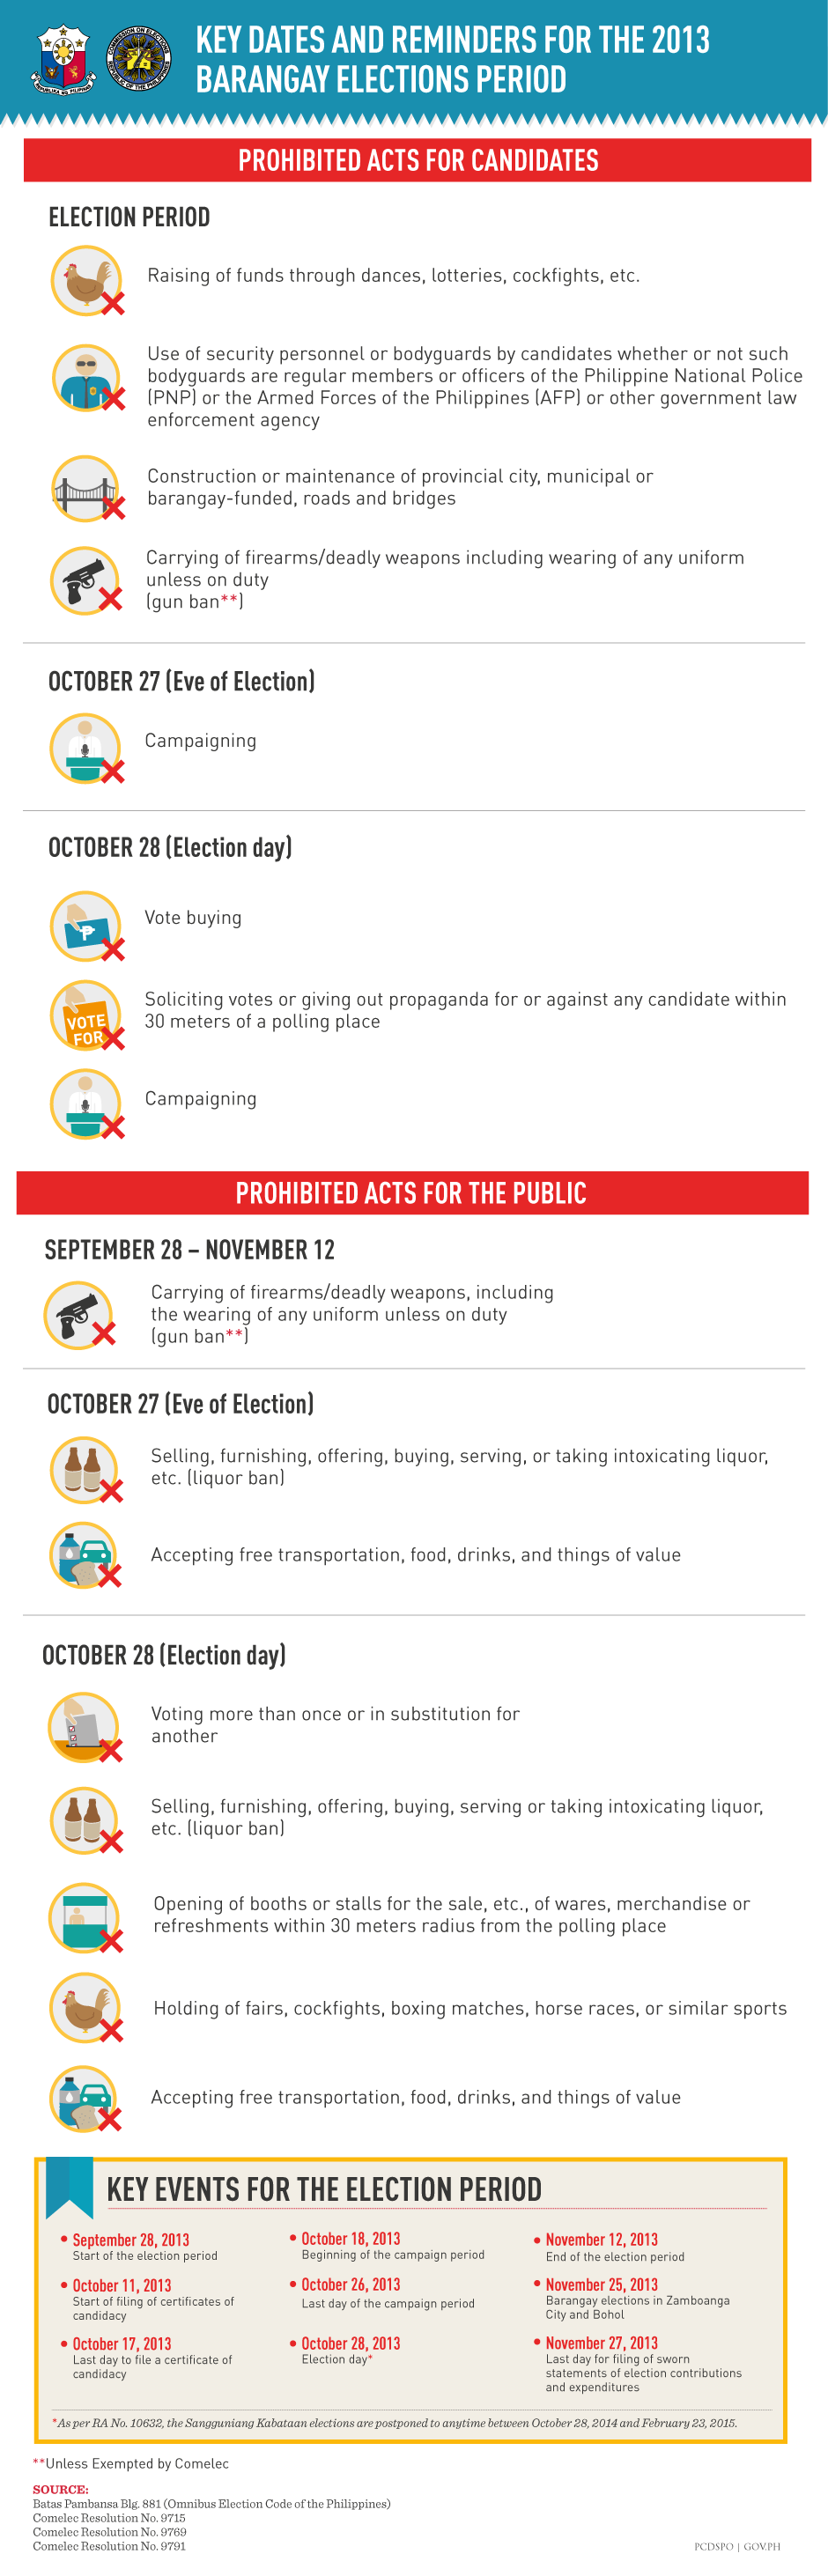 http://www.gov.ph/images/uploads/elections-barangay2-1.png